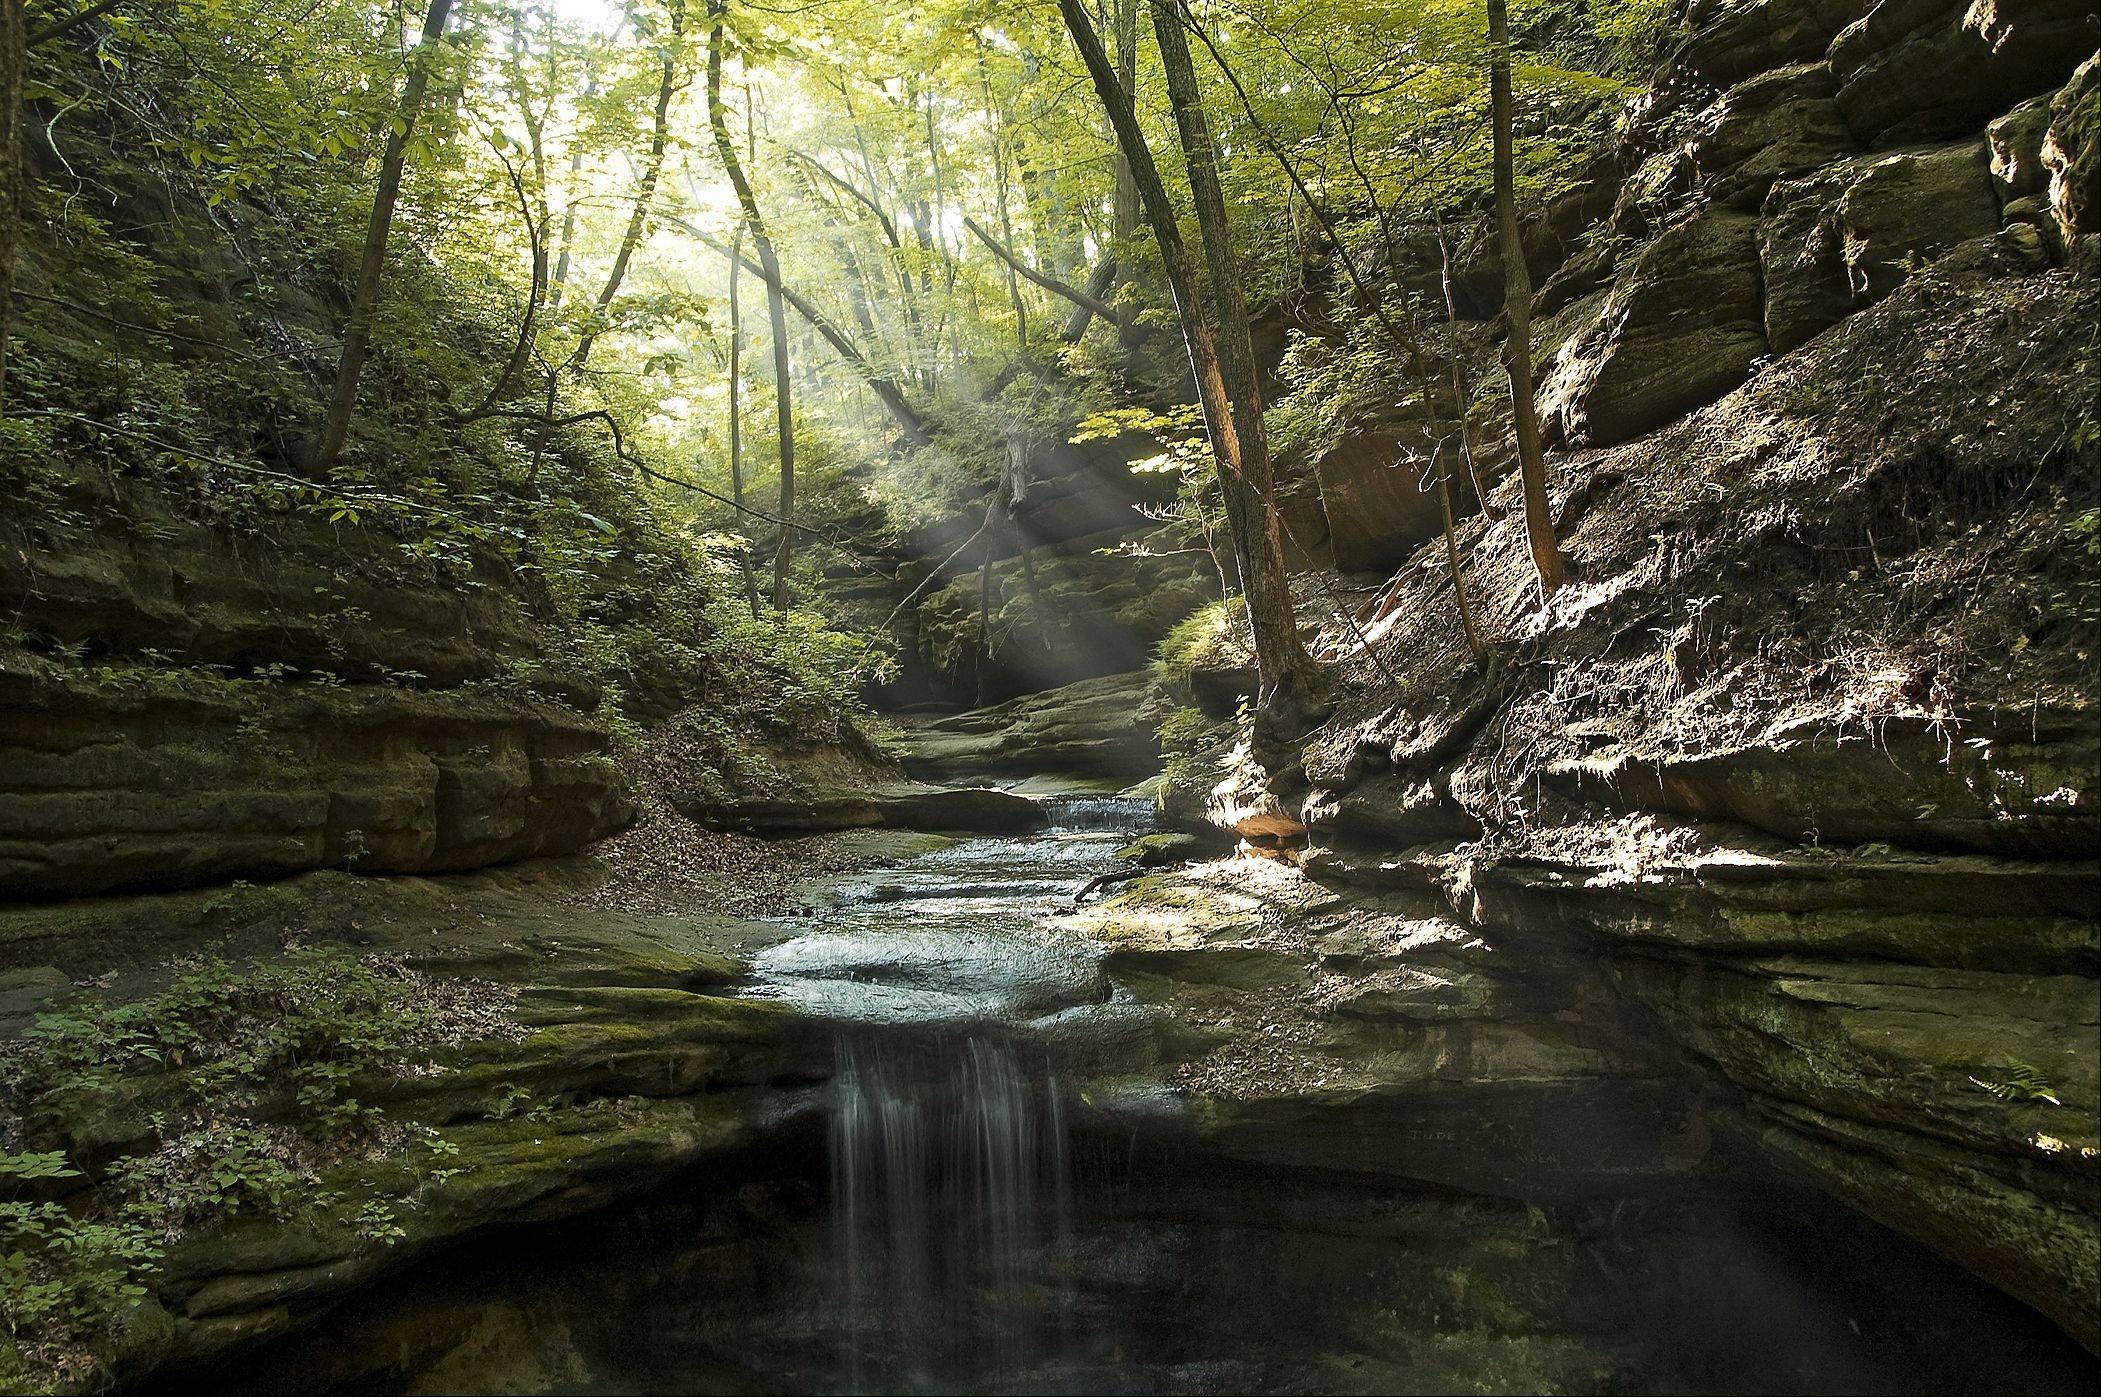 A photo taken in May of lady year while visiting Matthiessen State Park. Heavy rains had fallen the day previous to my visit. Mild temperature calm winds and the presence of ground fog combined with damp shady moss laden sandstone walls to produce a scene so tranquil that I didn't want to leave. The fog captured the light beams and the waterfall was soothing to the ears. Just an outright perfect scene